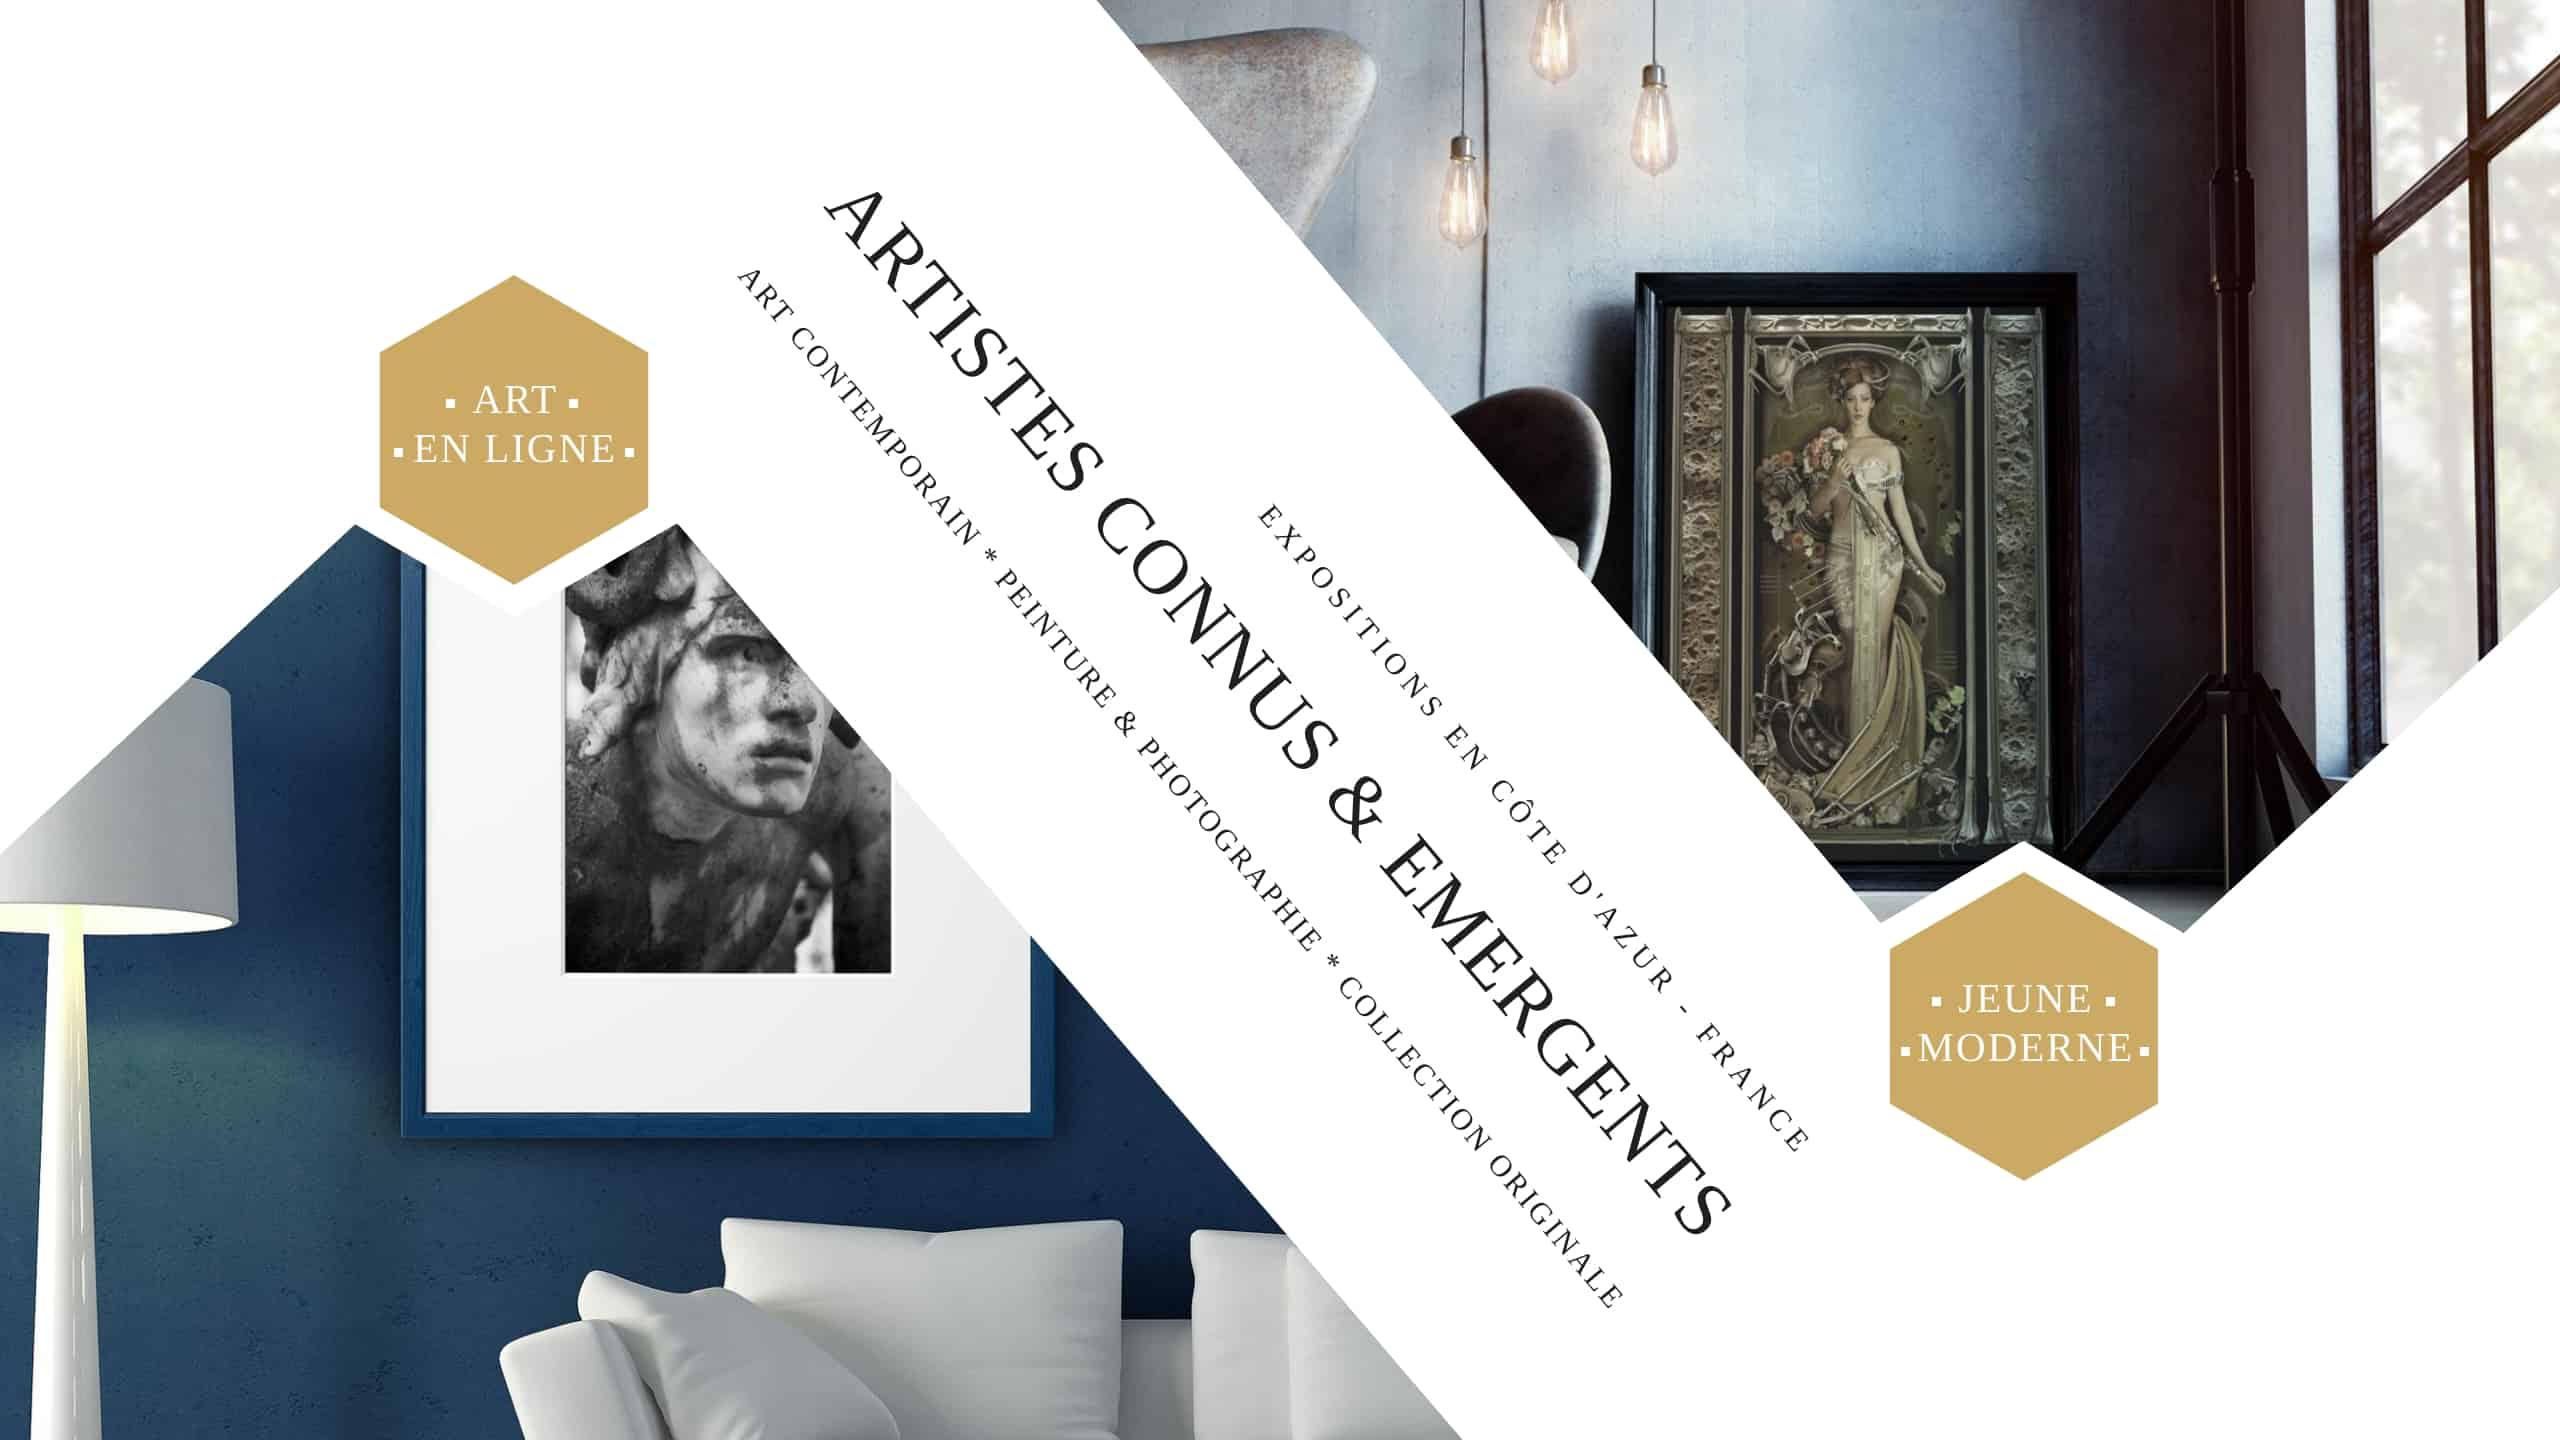 Nos artistes contemporains | Catalogue de galerie d'art